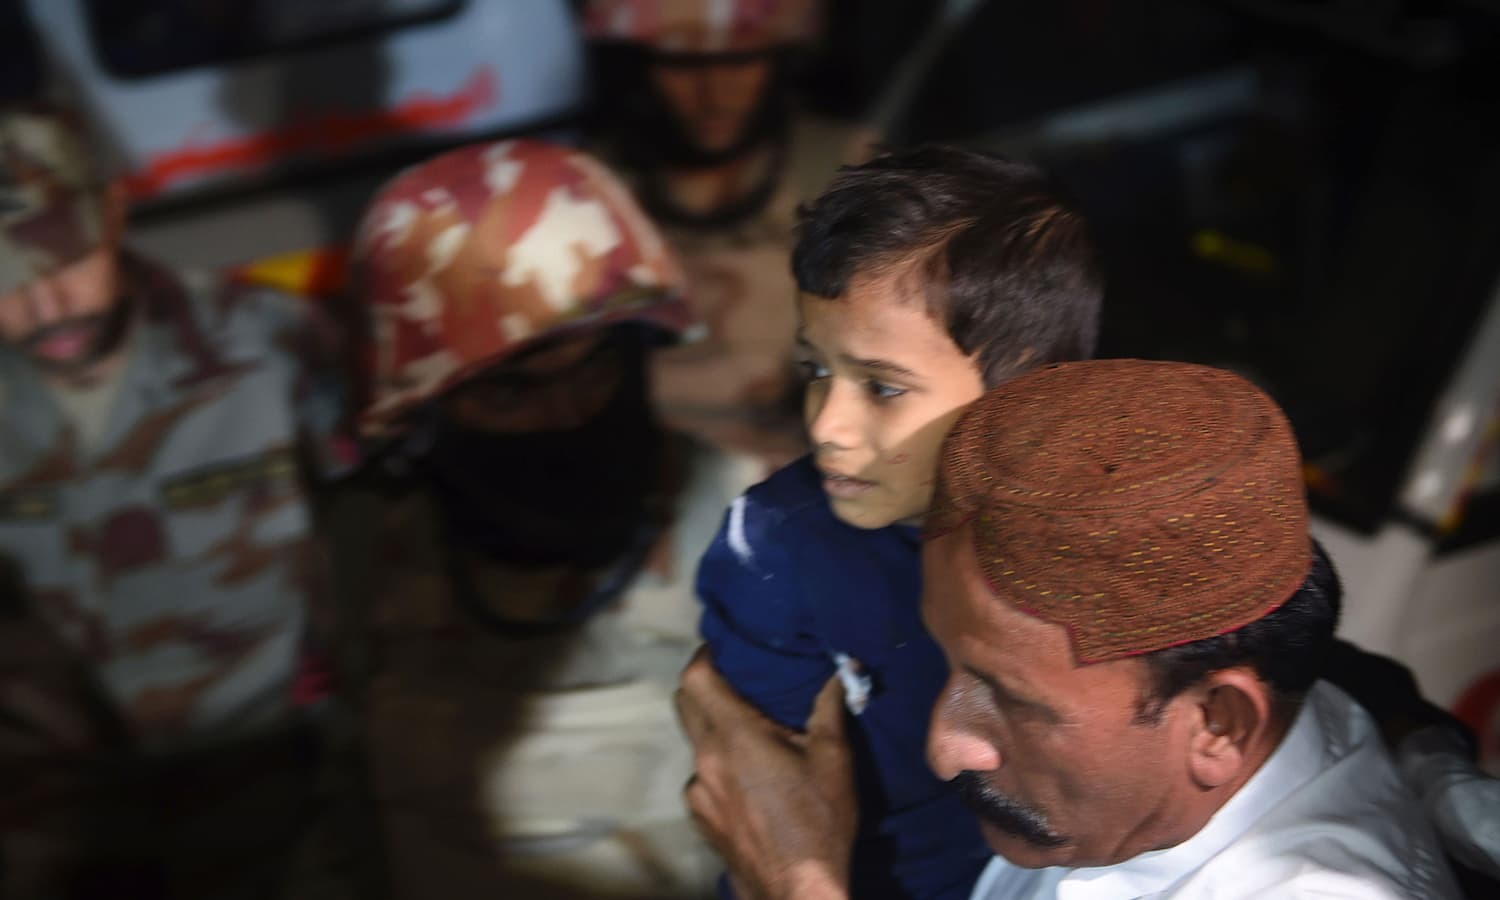 A man carries a boy injured after a bomb blast at a hospital in the Hub district. ─ AFP